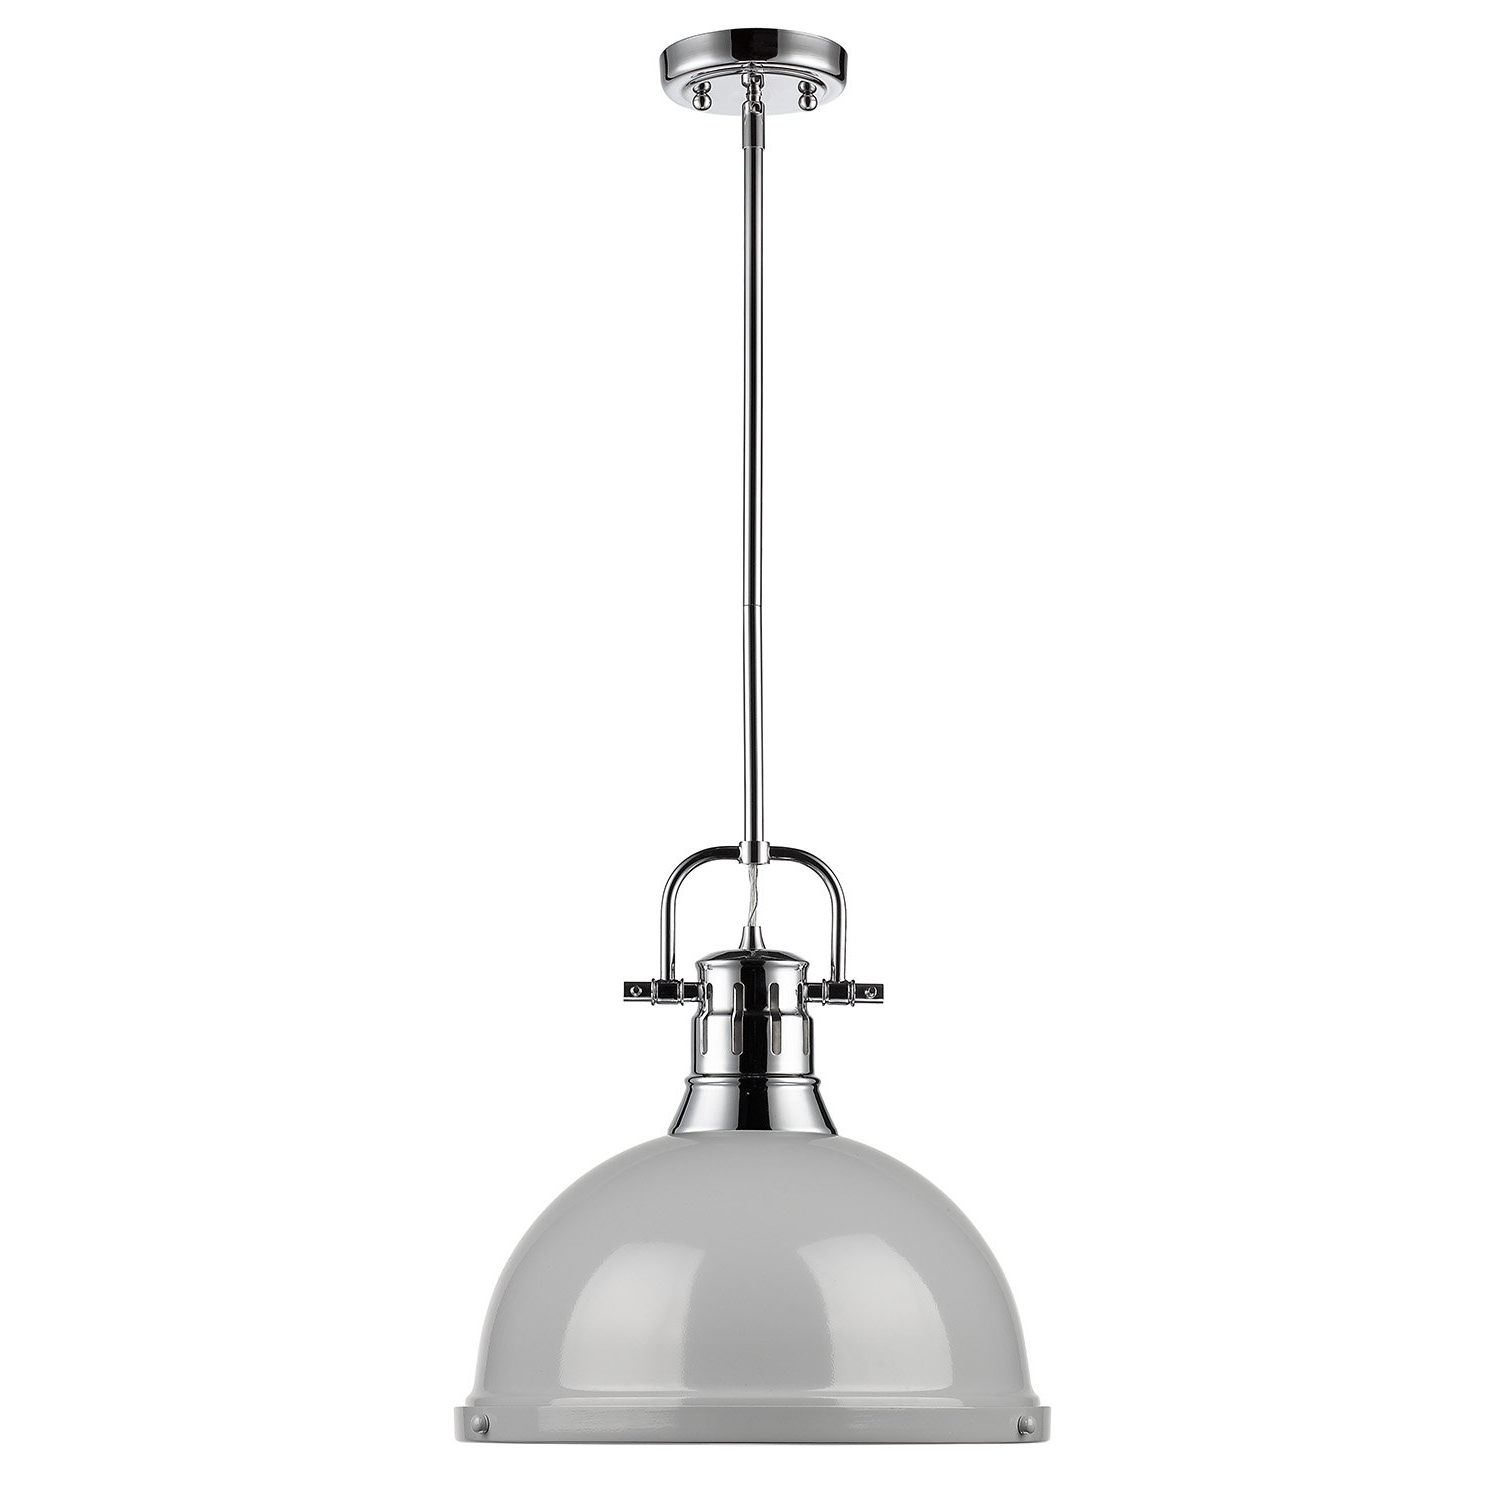 1 Light Single Dome Pendants For Most Current Bodalla 1 Light Single Dome Pendant (Gallery 22 of 25)